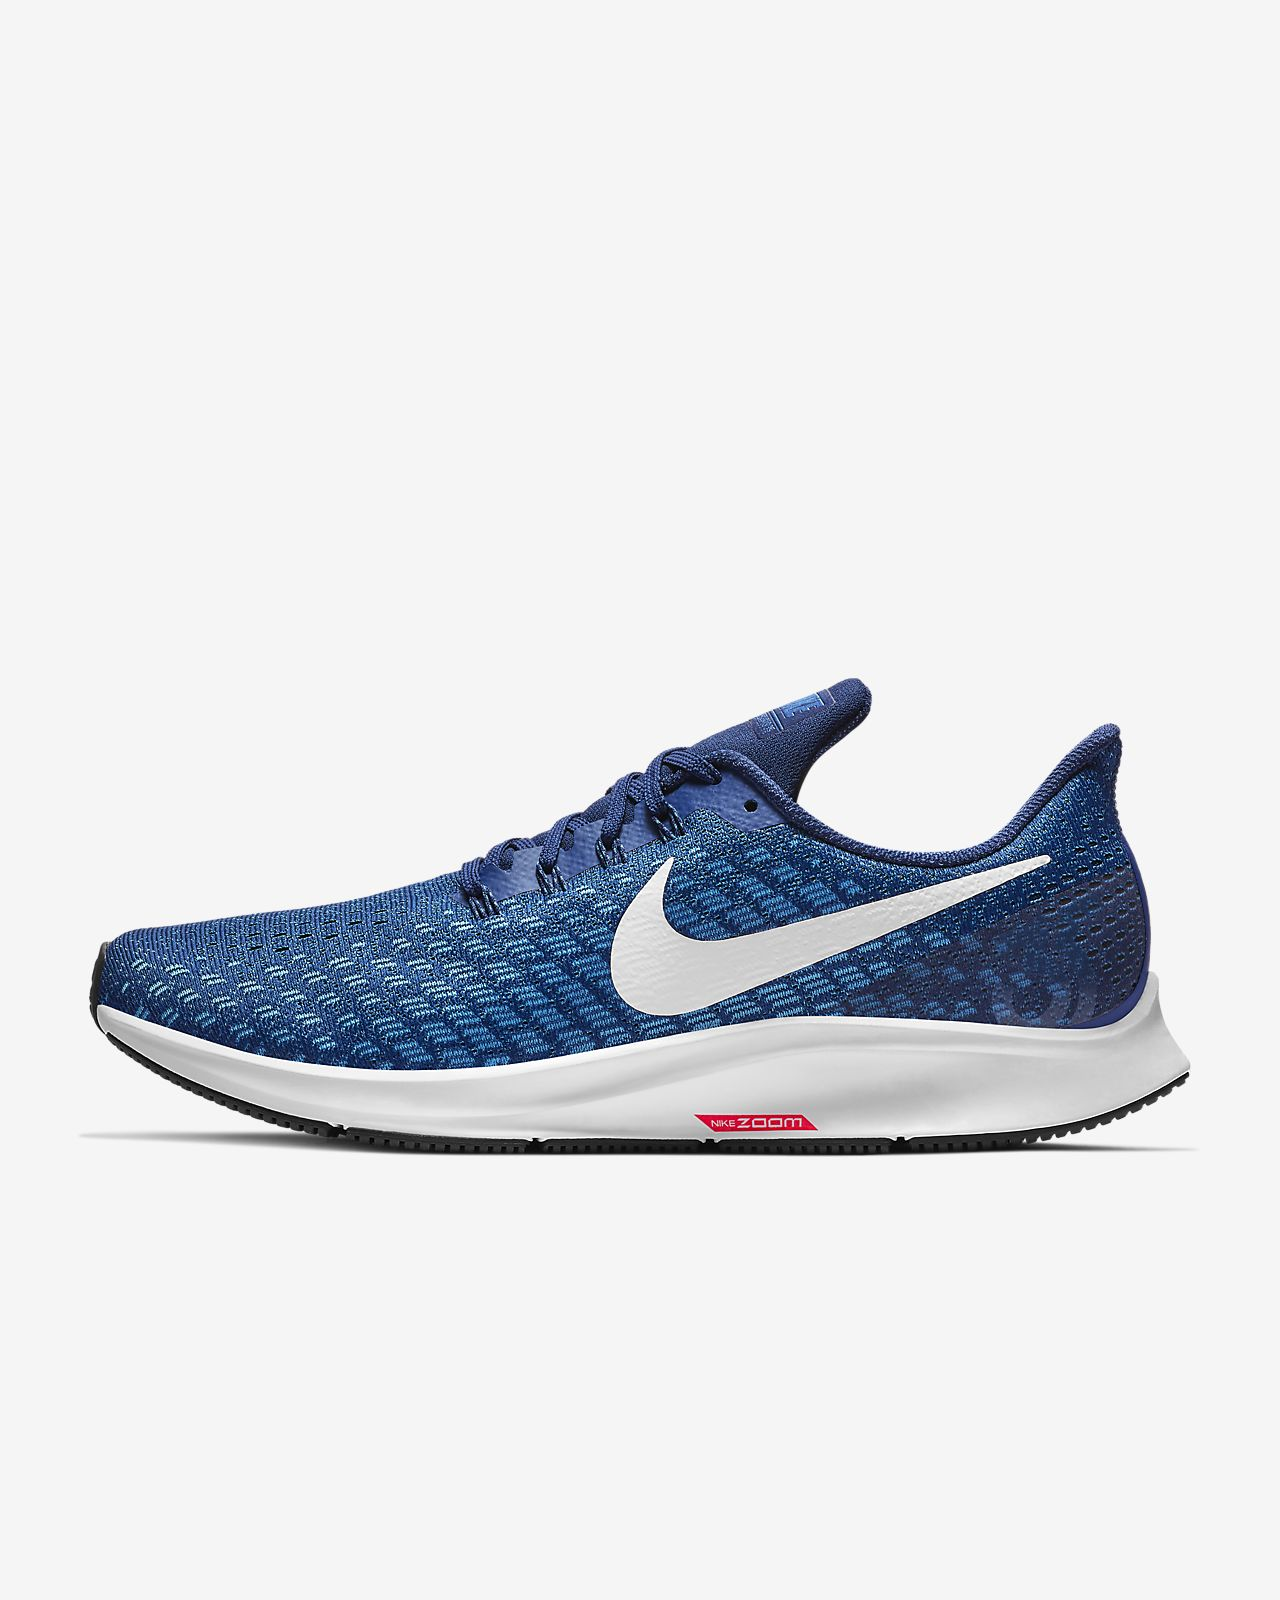 eaaea7b560c5 Nike Air Zoom Pegasus 35 Men s Running Shoe. Nike.com GB